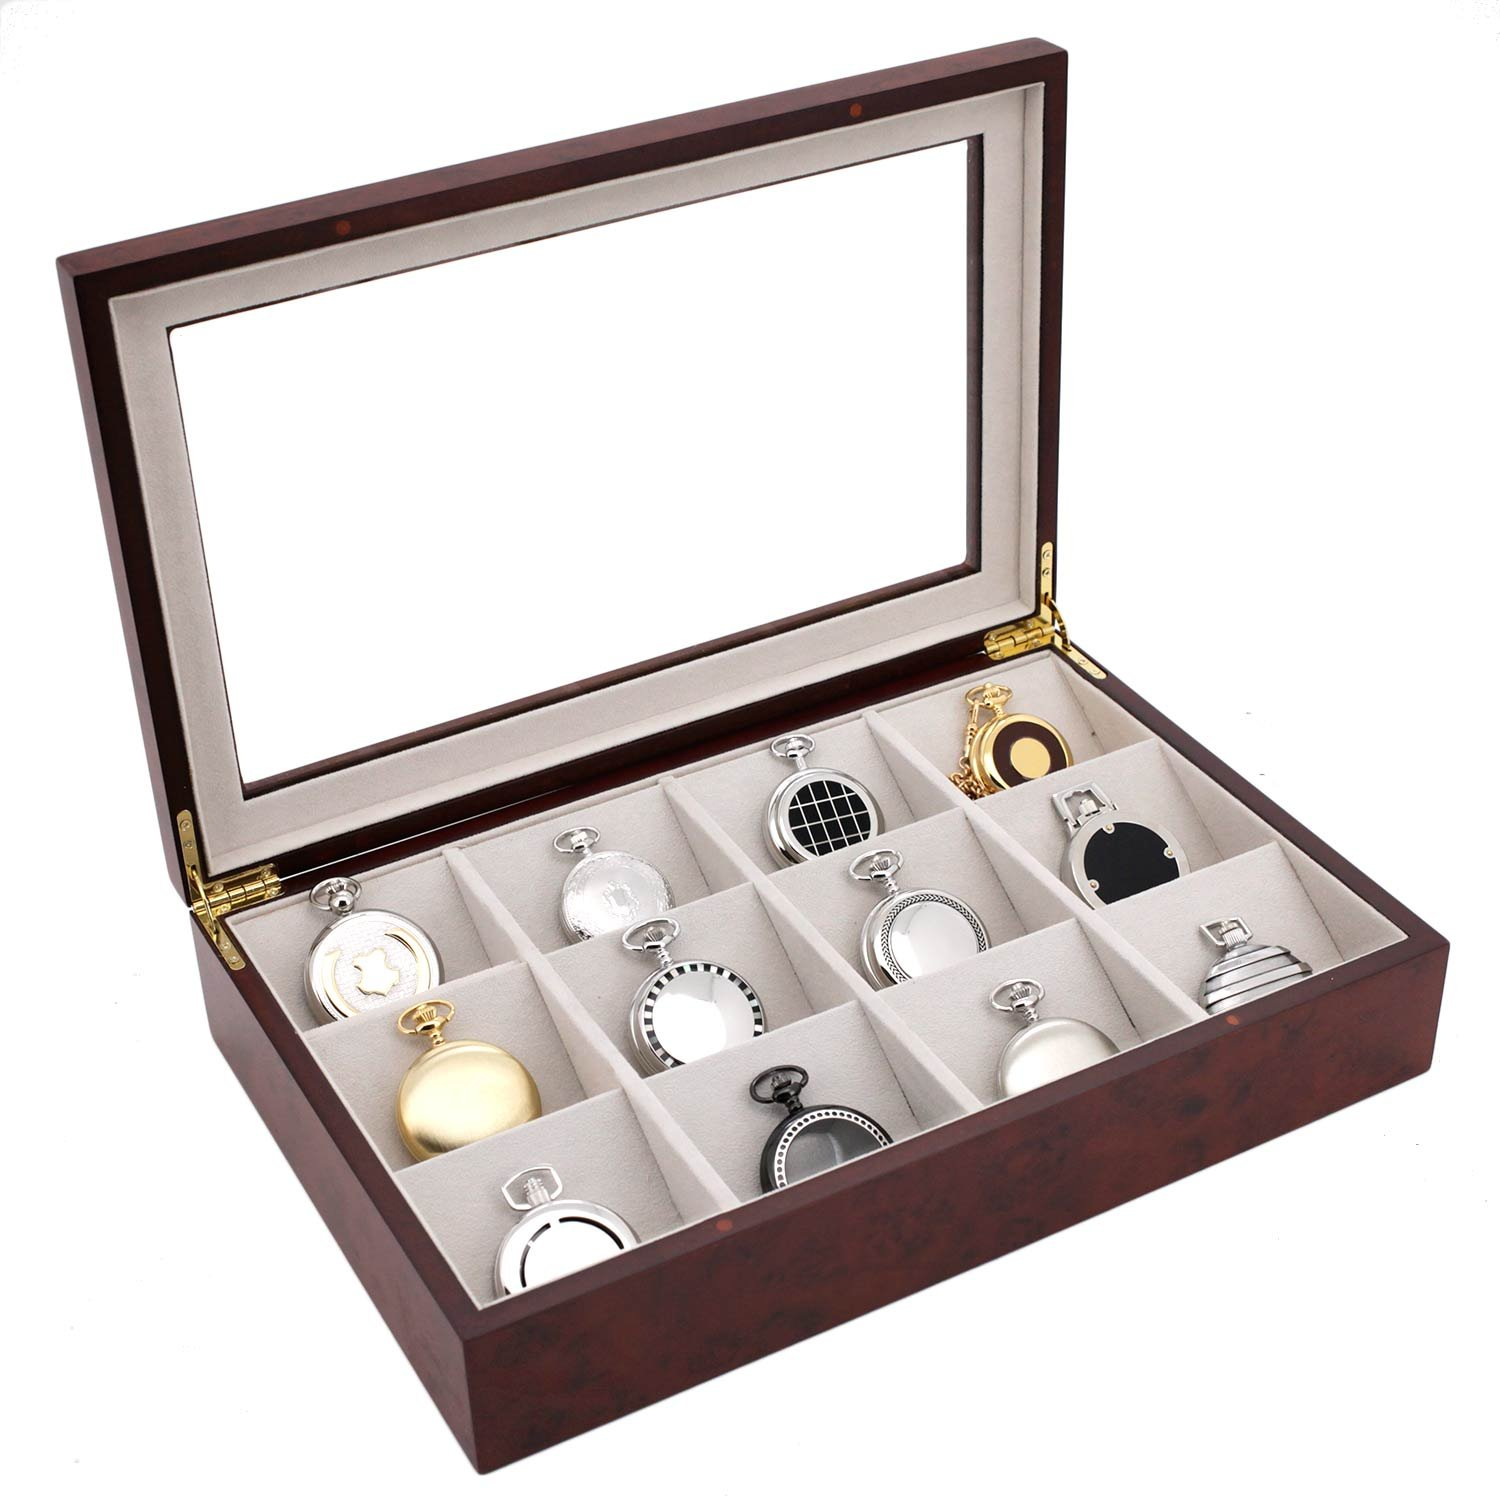 Pocket Watch Box Display Case Wood Large Compartments Glass Window (Burlwood)